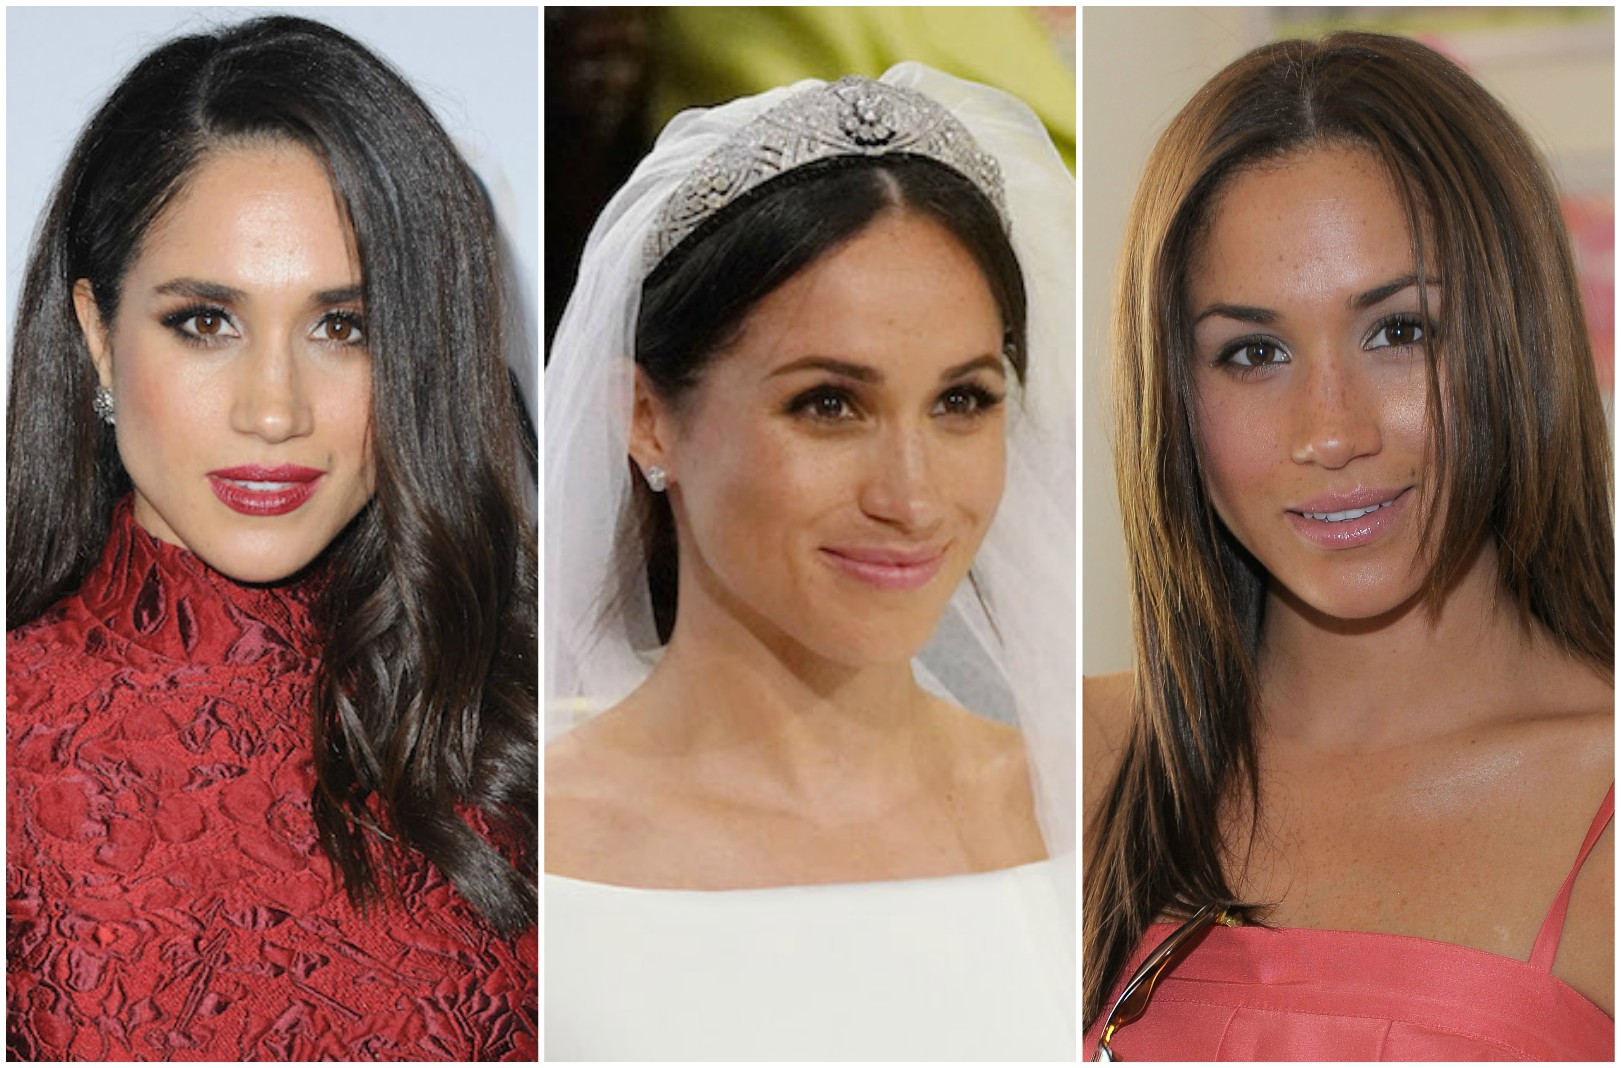 Meghan Markle's beauty evolution, from her <em>Deal or No Deal</em> days to becoming a British royal